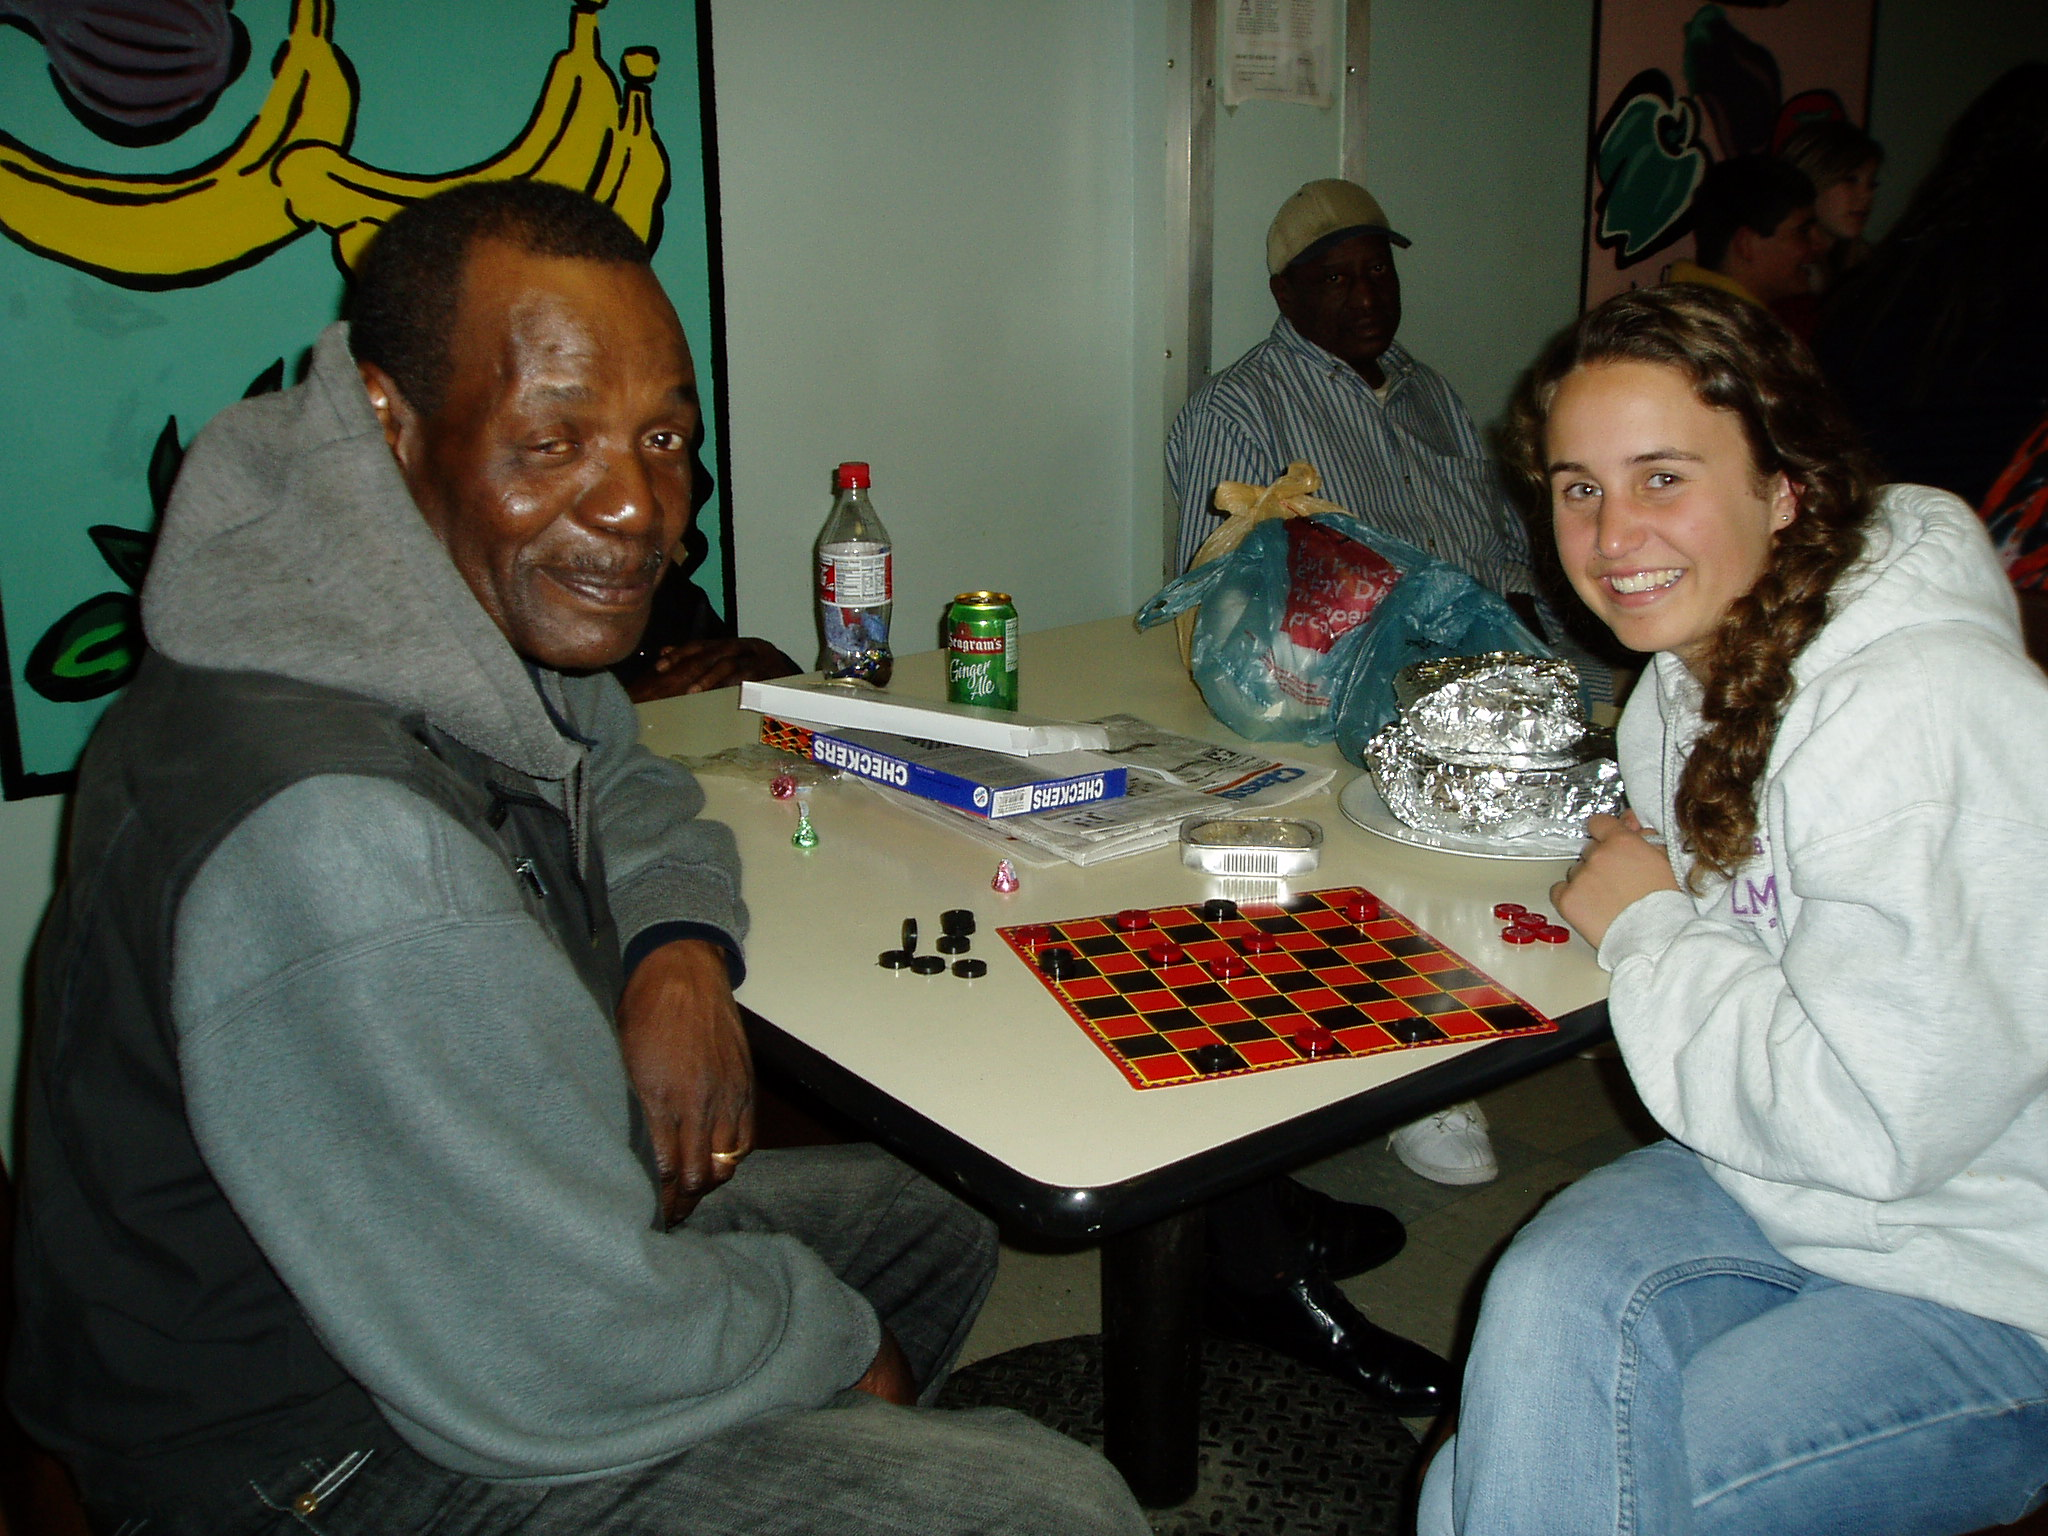 checkers at CCNV